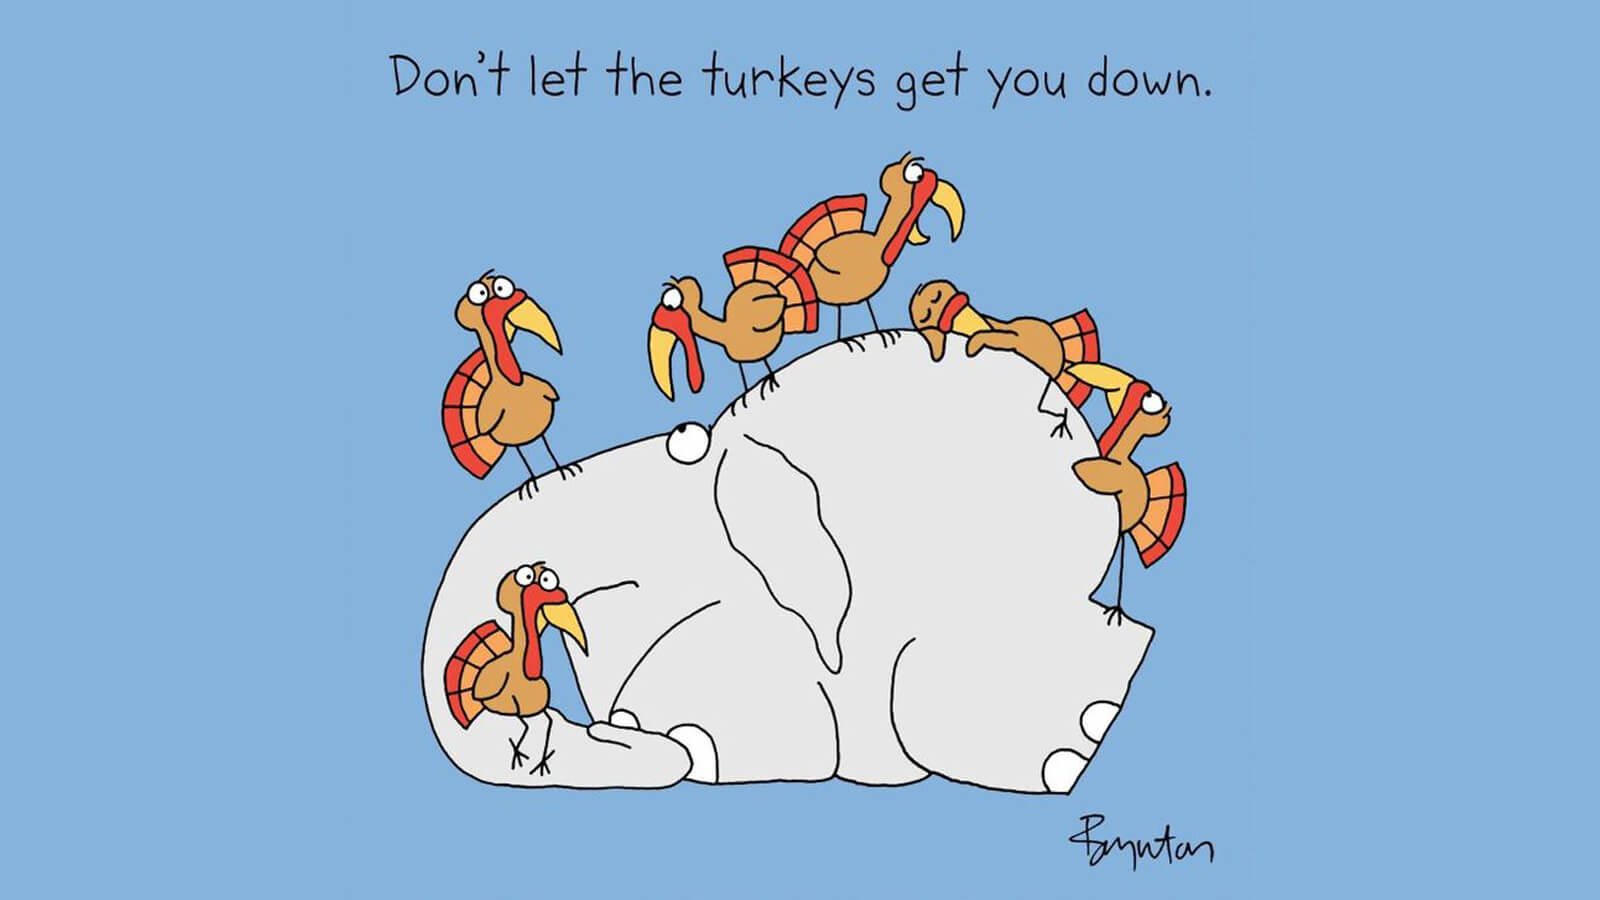 Don't Let the Turkeys Get You Down!